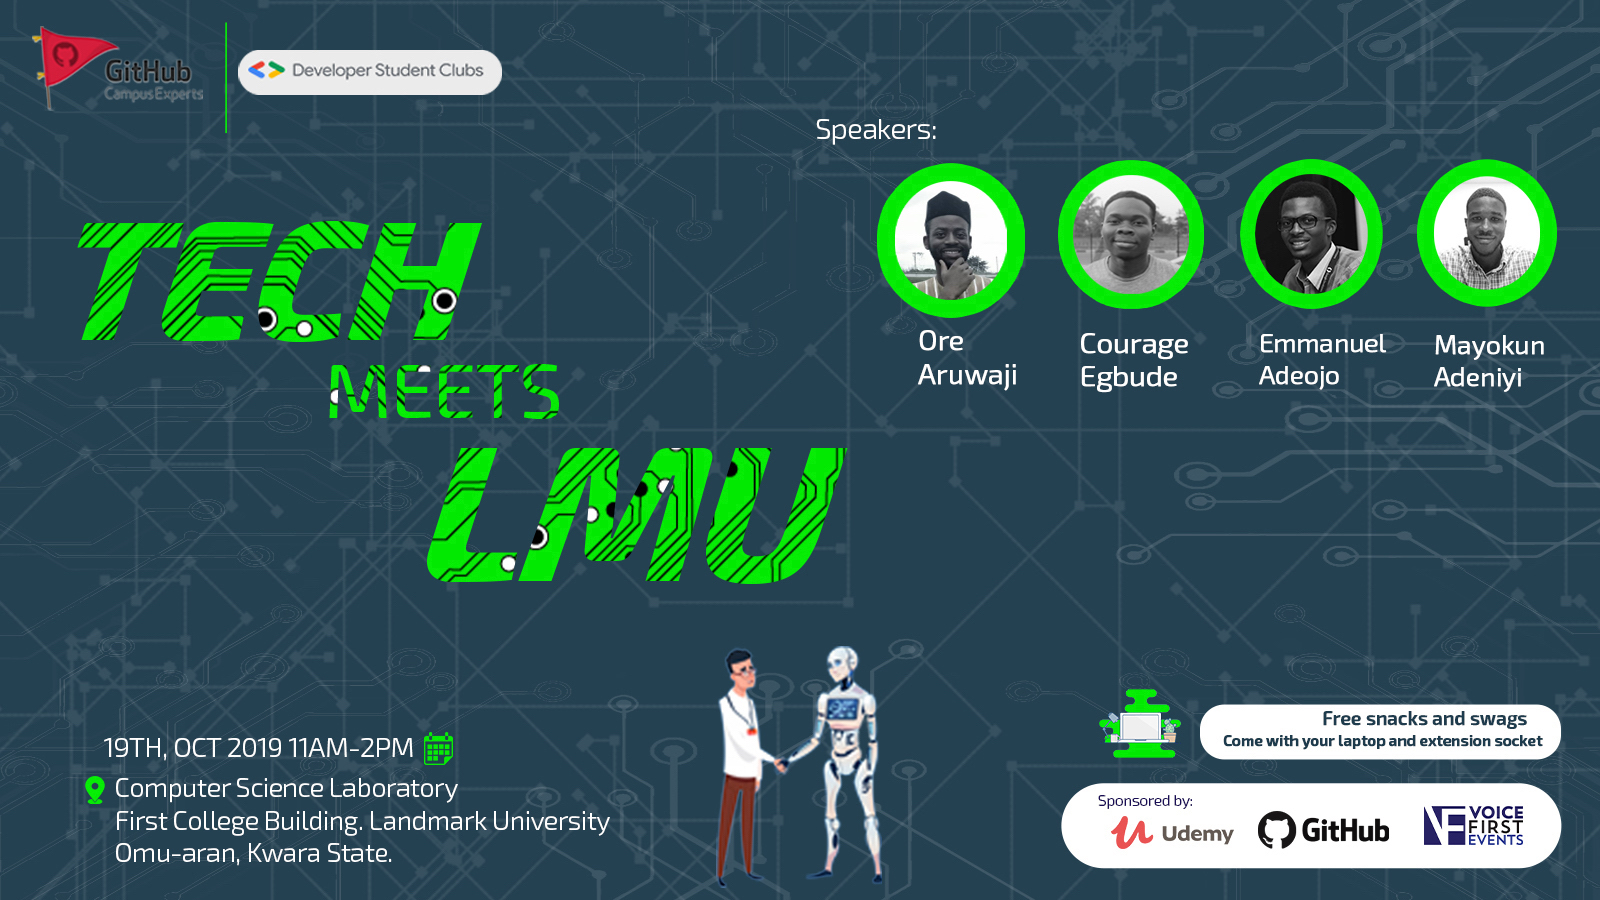 A meetup organized by the Developer Student Club (DSC) Landmark University and GitHub Campus Experts.